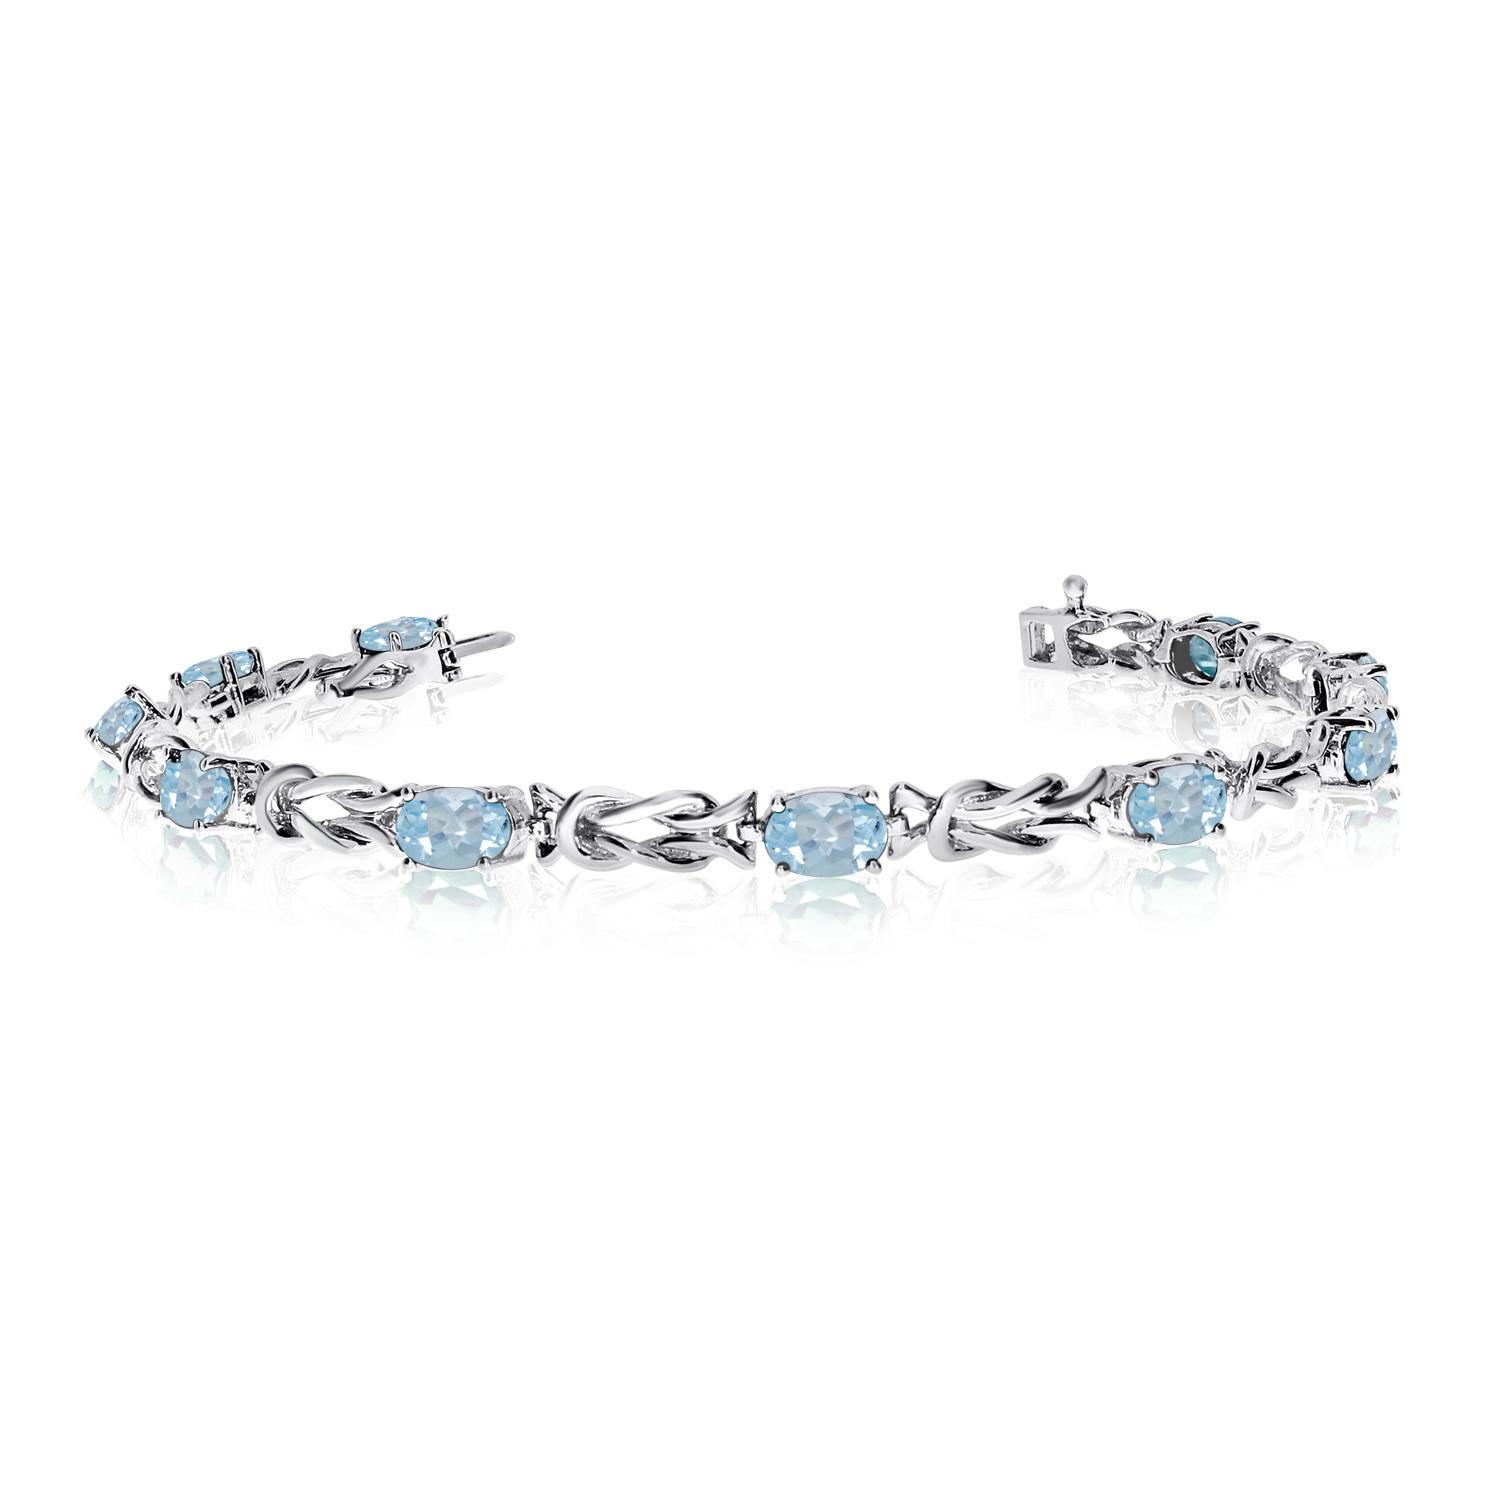 14K White Gold Oval Aquamarine Reef Knot Bracelet by